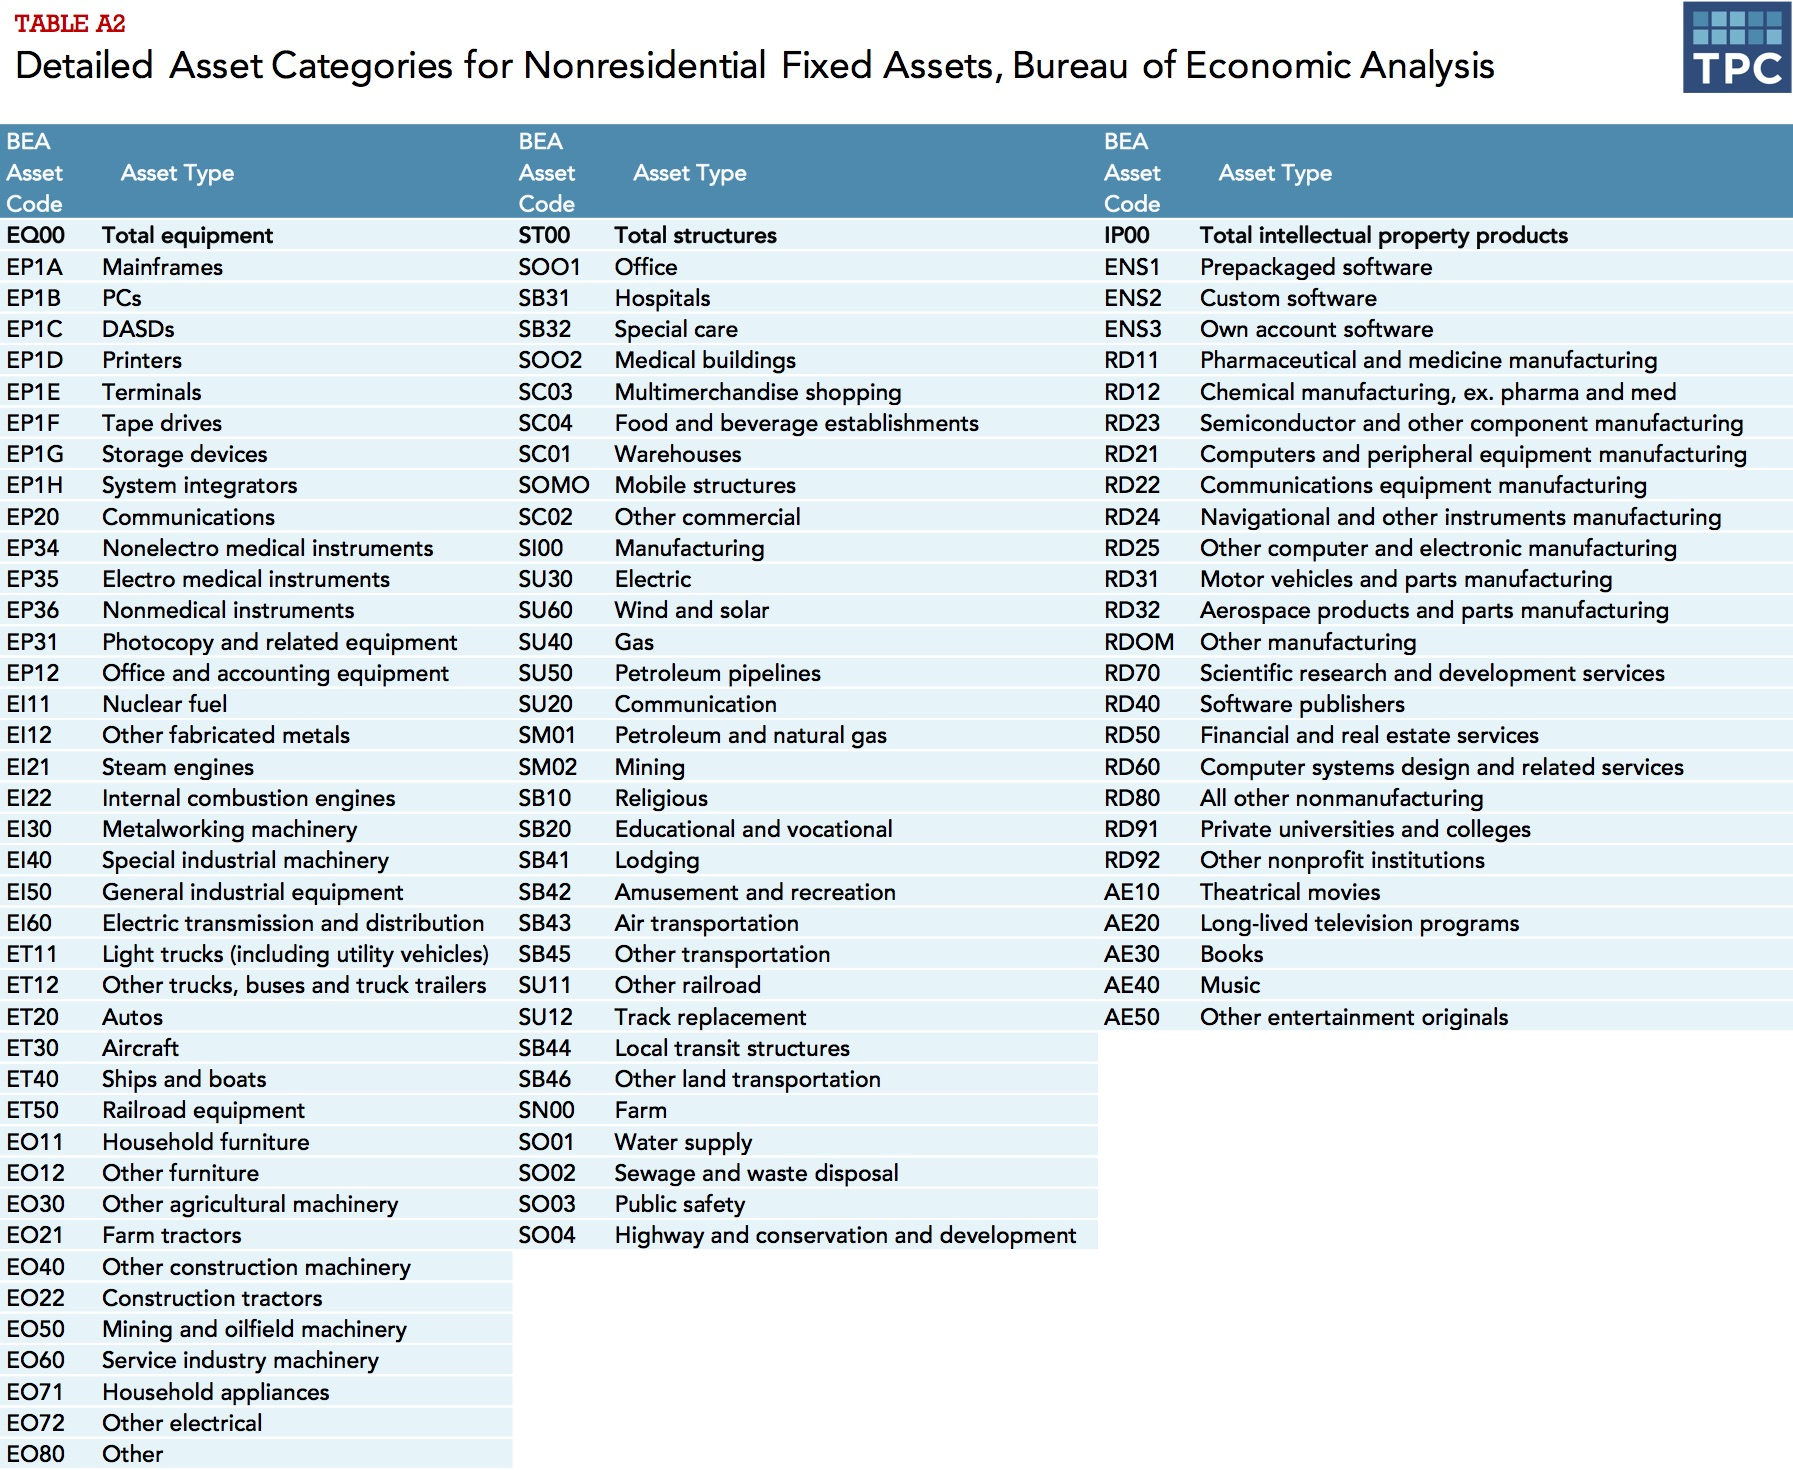 Detailed Asset Categories for Nonresidential Fixed Assets, Bureau of Economic Analysis